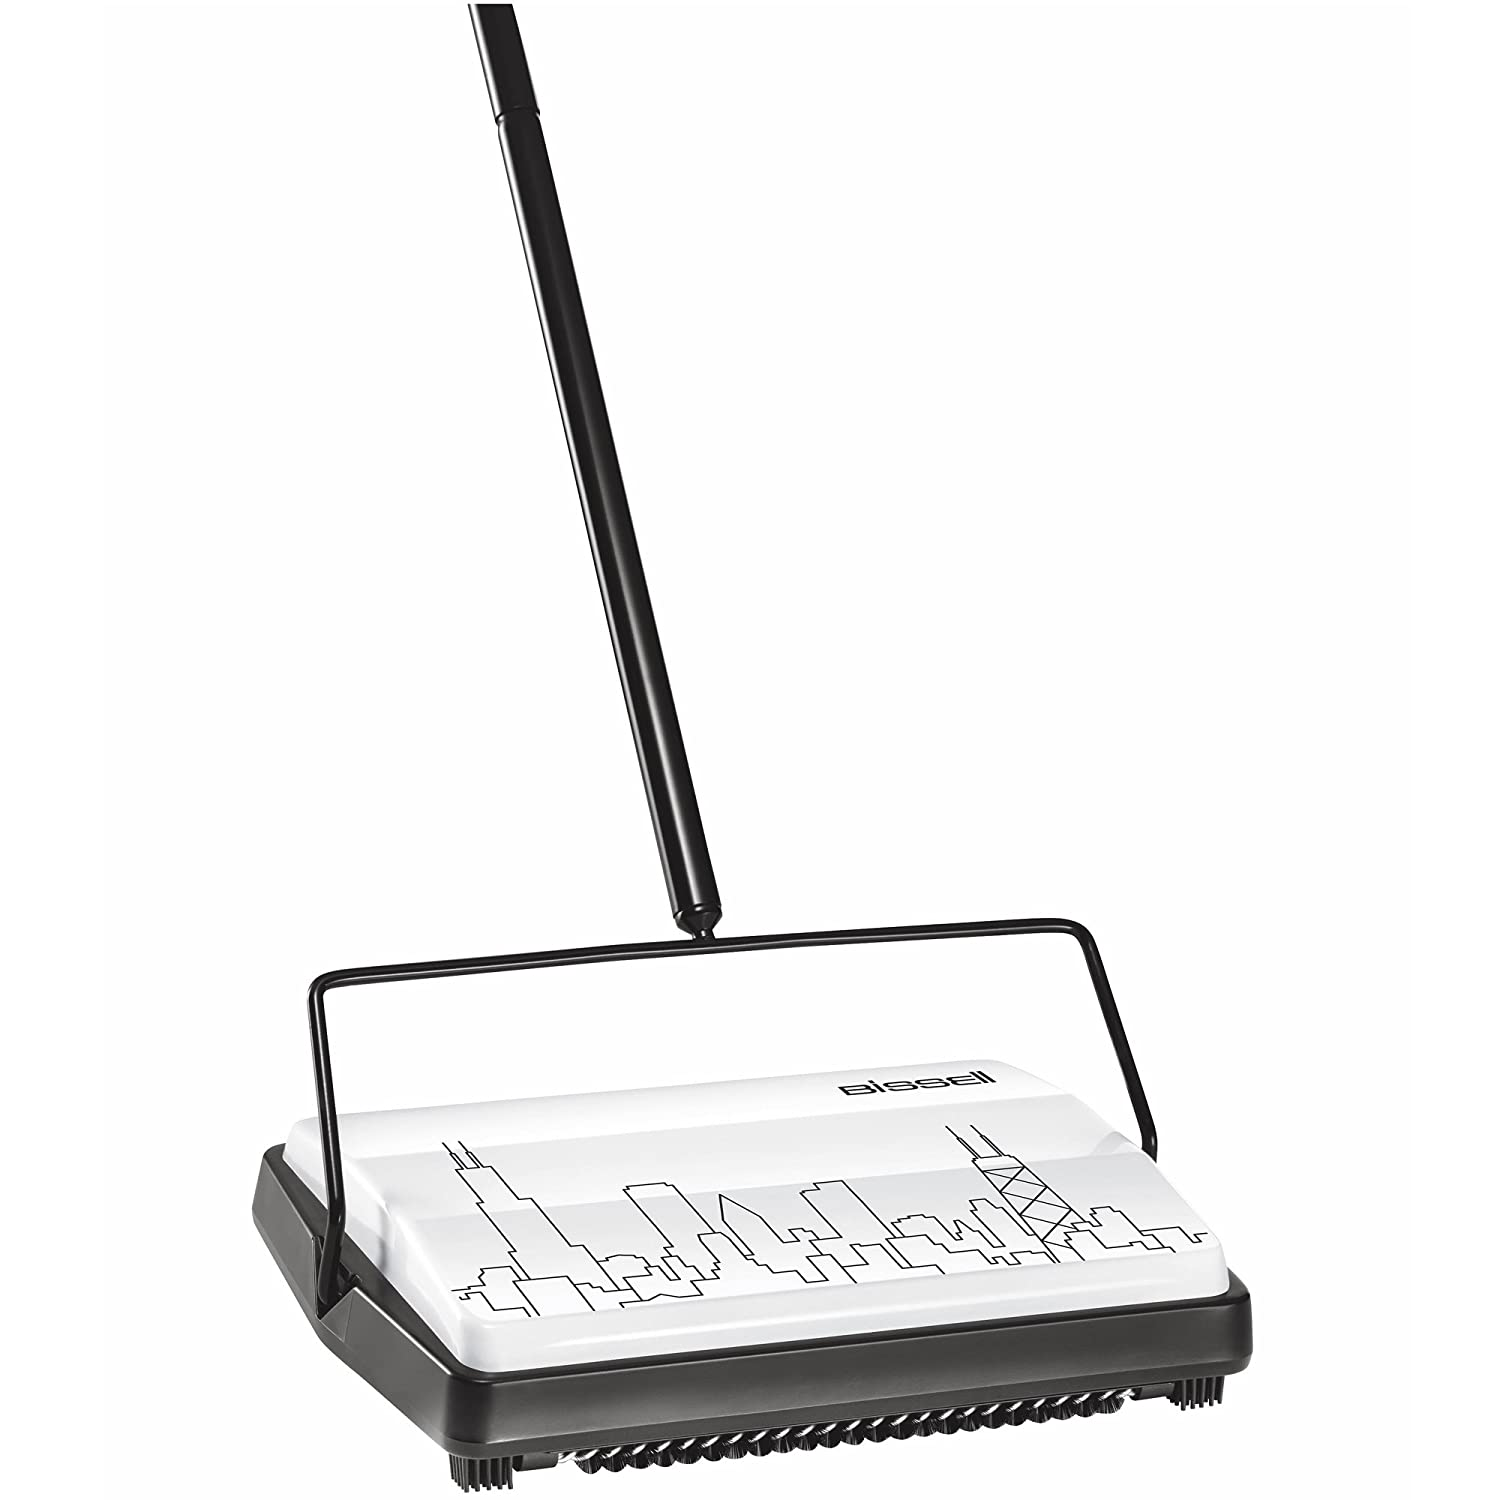 Bissell City Sweep Manual Sweeper, Chicago Edition BISSELL Homecare Inc. 2206